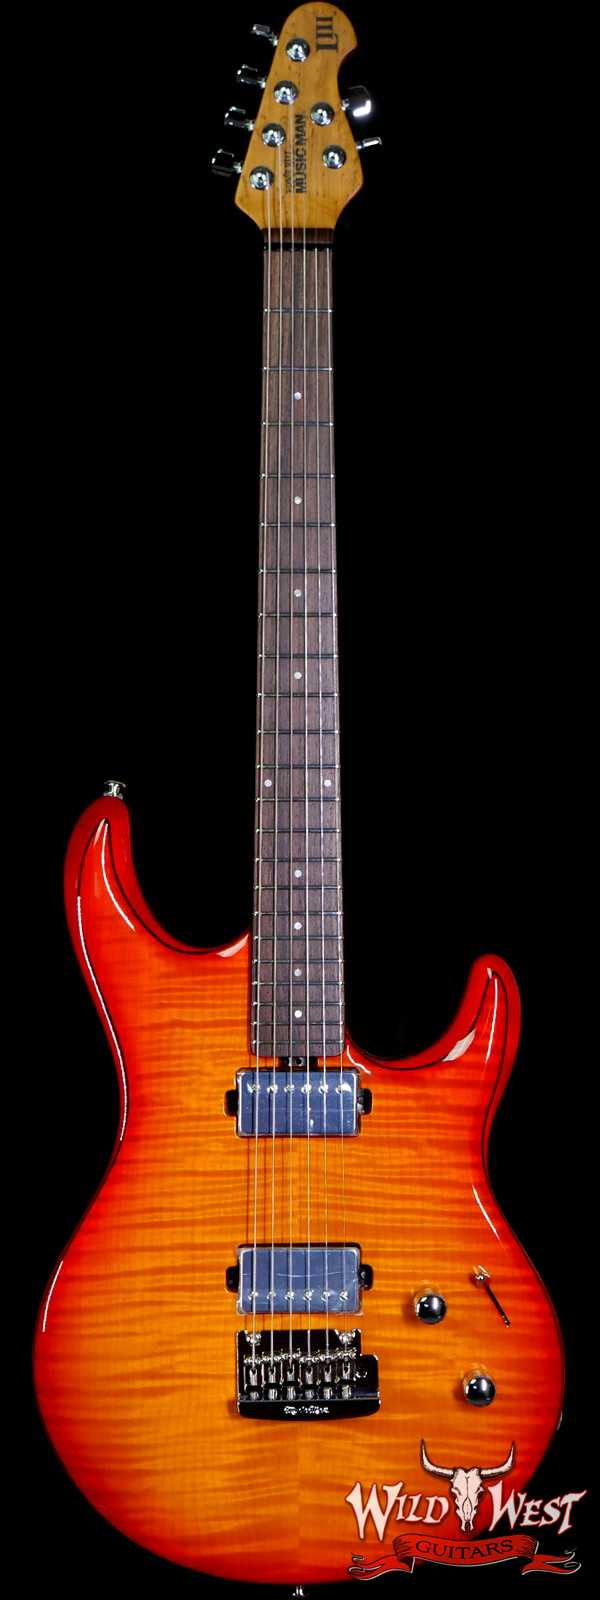 Ernie Ball Music Man Steve Lukather Luke III HH Flame Maple Top Roasted Birdseye Maple Neck Cherry Burst